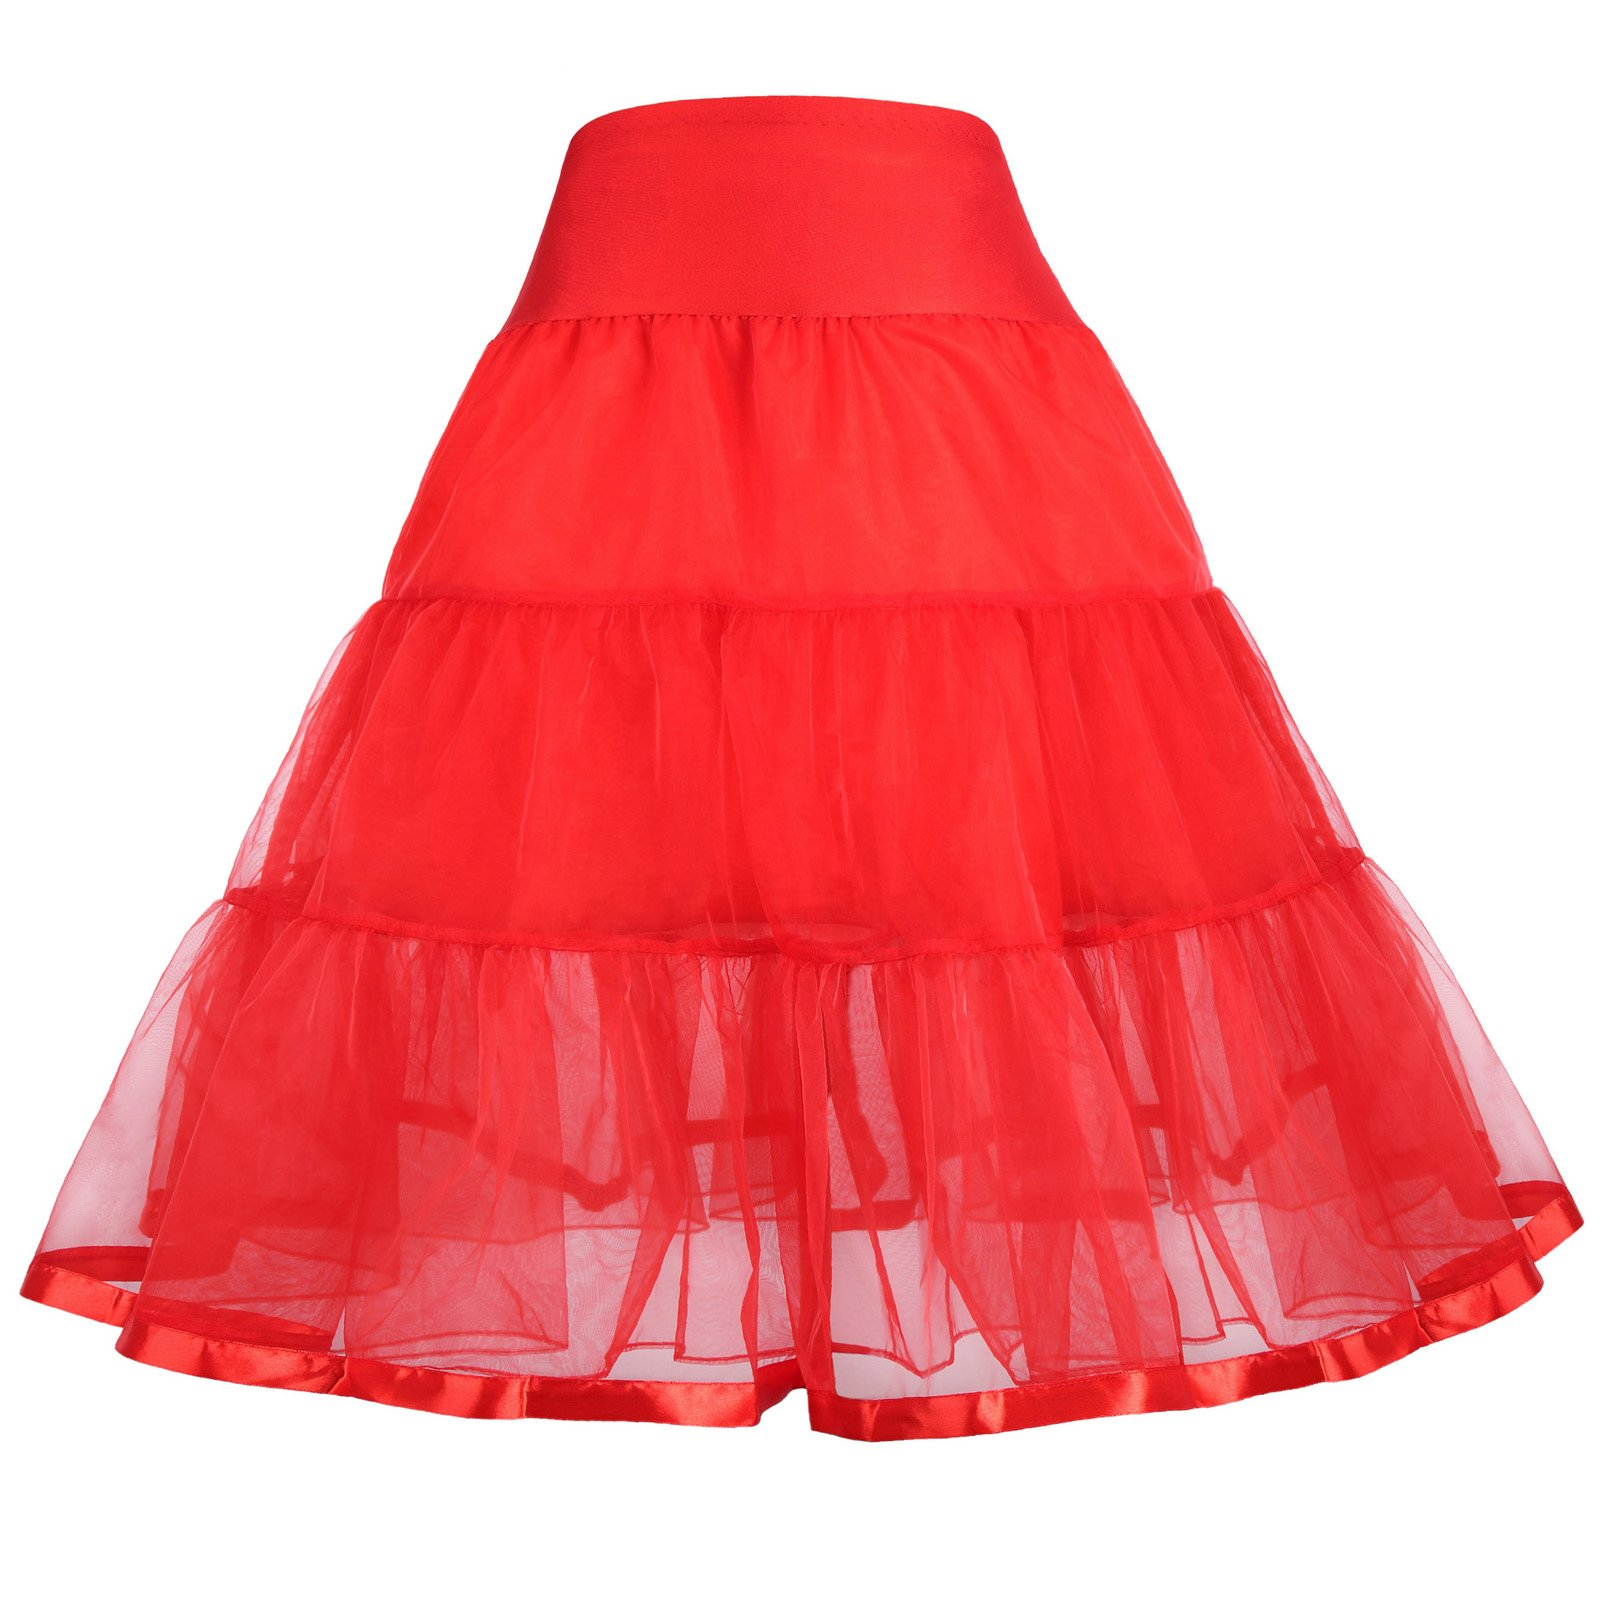 GRACE KARIN Baby Girls Solid Dance Swing Tutu Petticoat 1-3 yrs 460-3 by GRACE KARIN